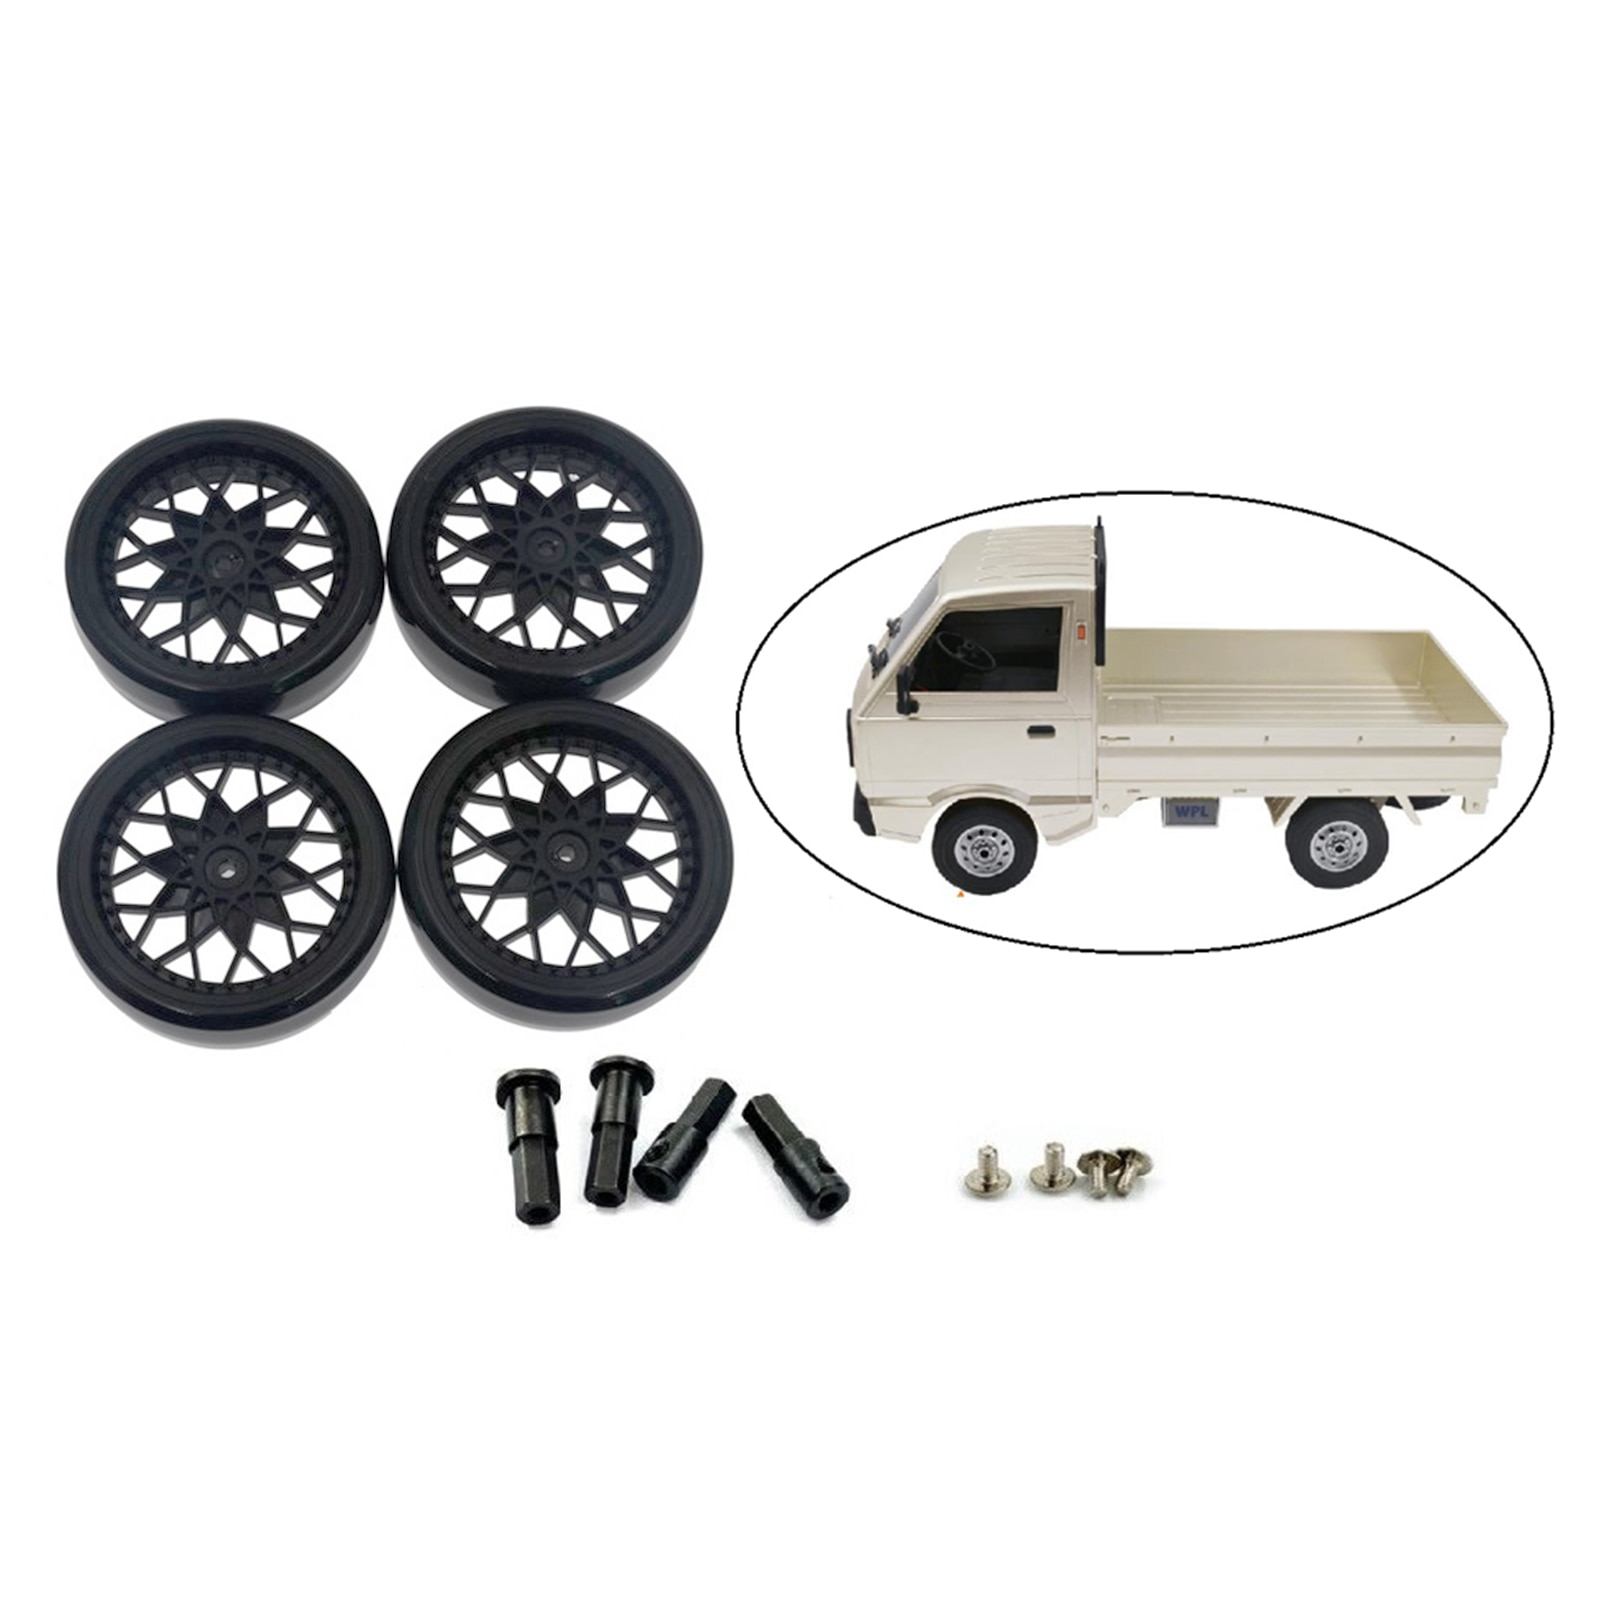 4pcs RC Rubber Tires Tyres & Wheel Axle for 1:10 WPL D12 Upgrade Parts